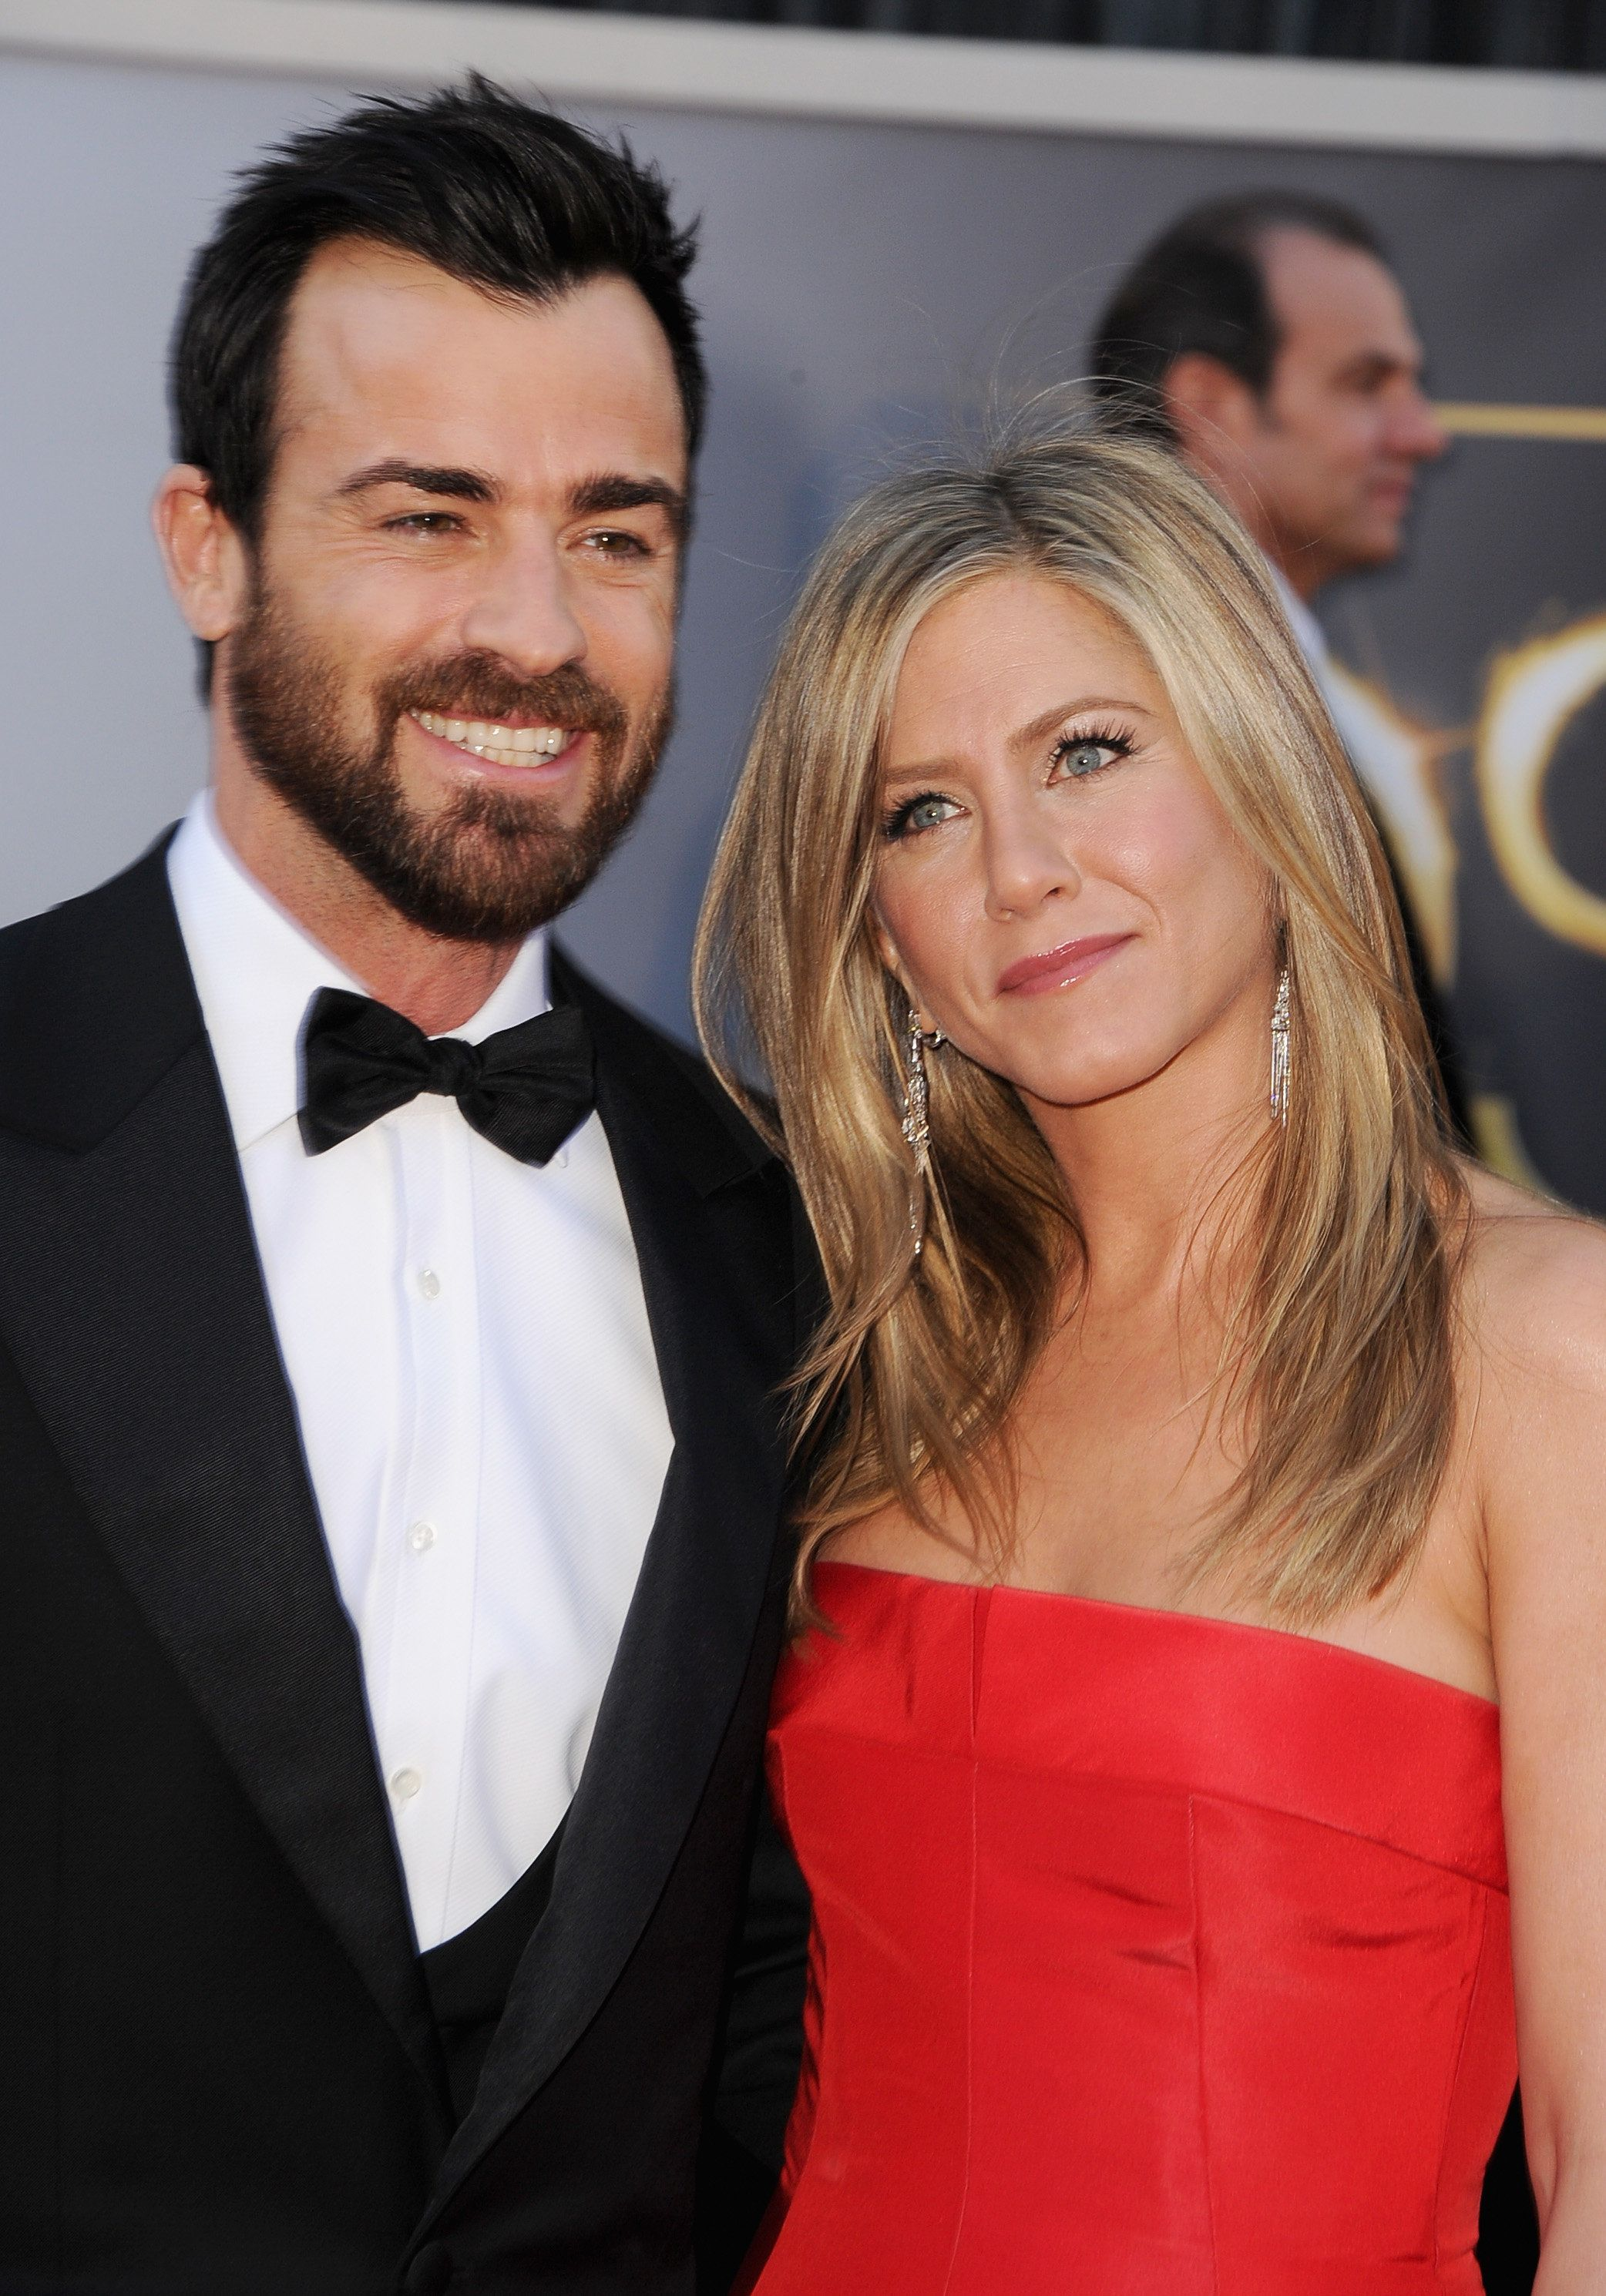 HOLLYWOOD, CA - FEBRUARY 24:  Justin Theroux and Jennifer Anniston arrive at the Oscars at Hollywood & Highland Center on February 24, 2013 in Hollywood, California.  (Photo by Steve Granitz/WireImage)